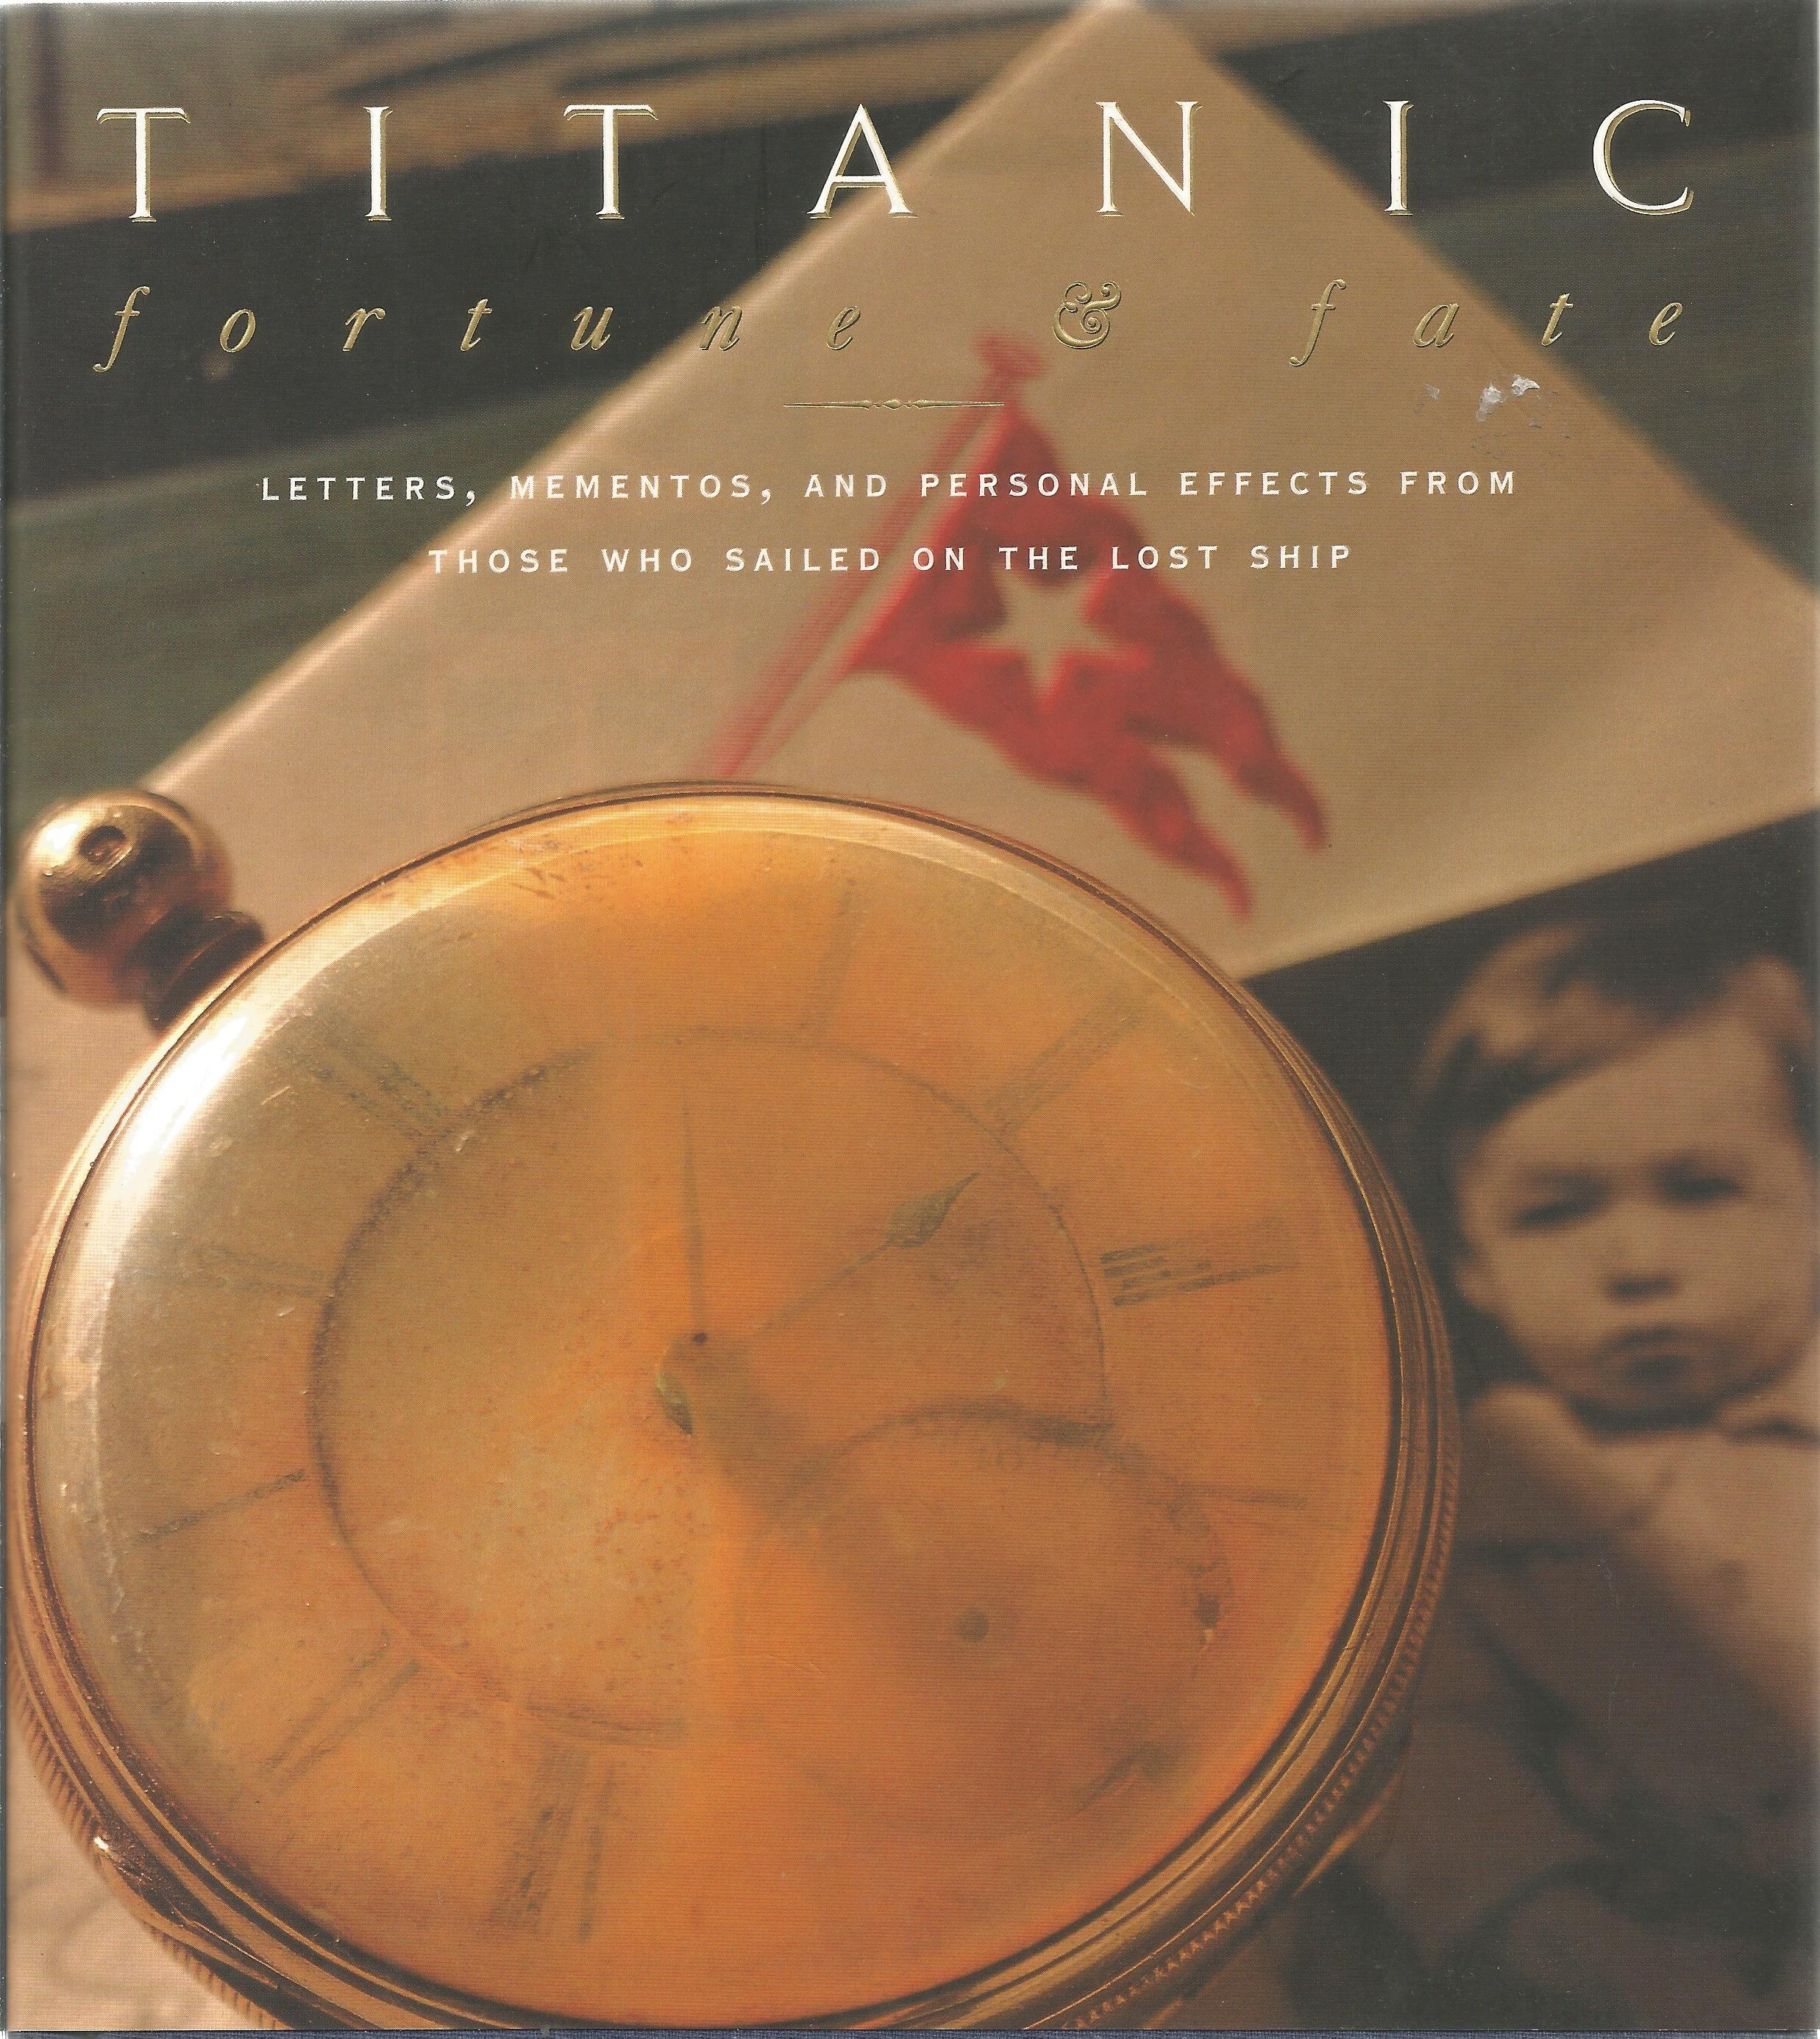 Titanic Fortune and Fate unsigned hardback book. 1998 Mariners Musuem edition. Very Good